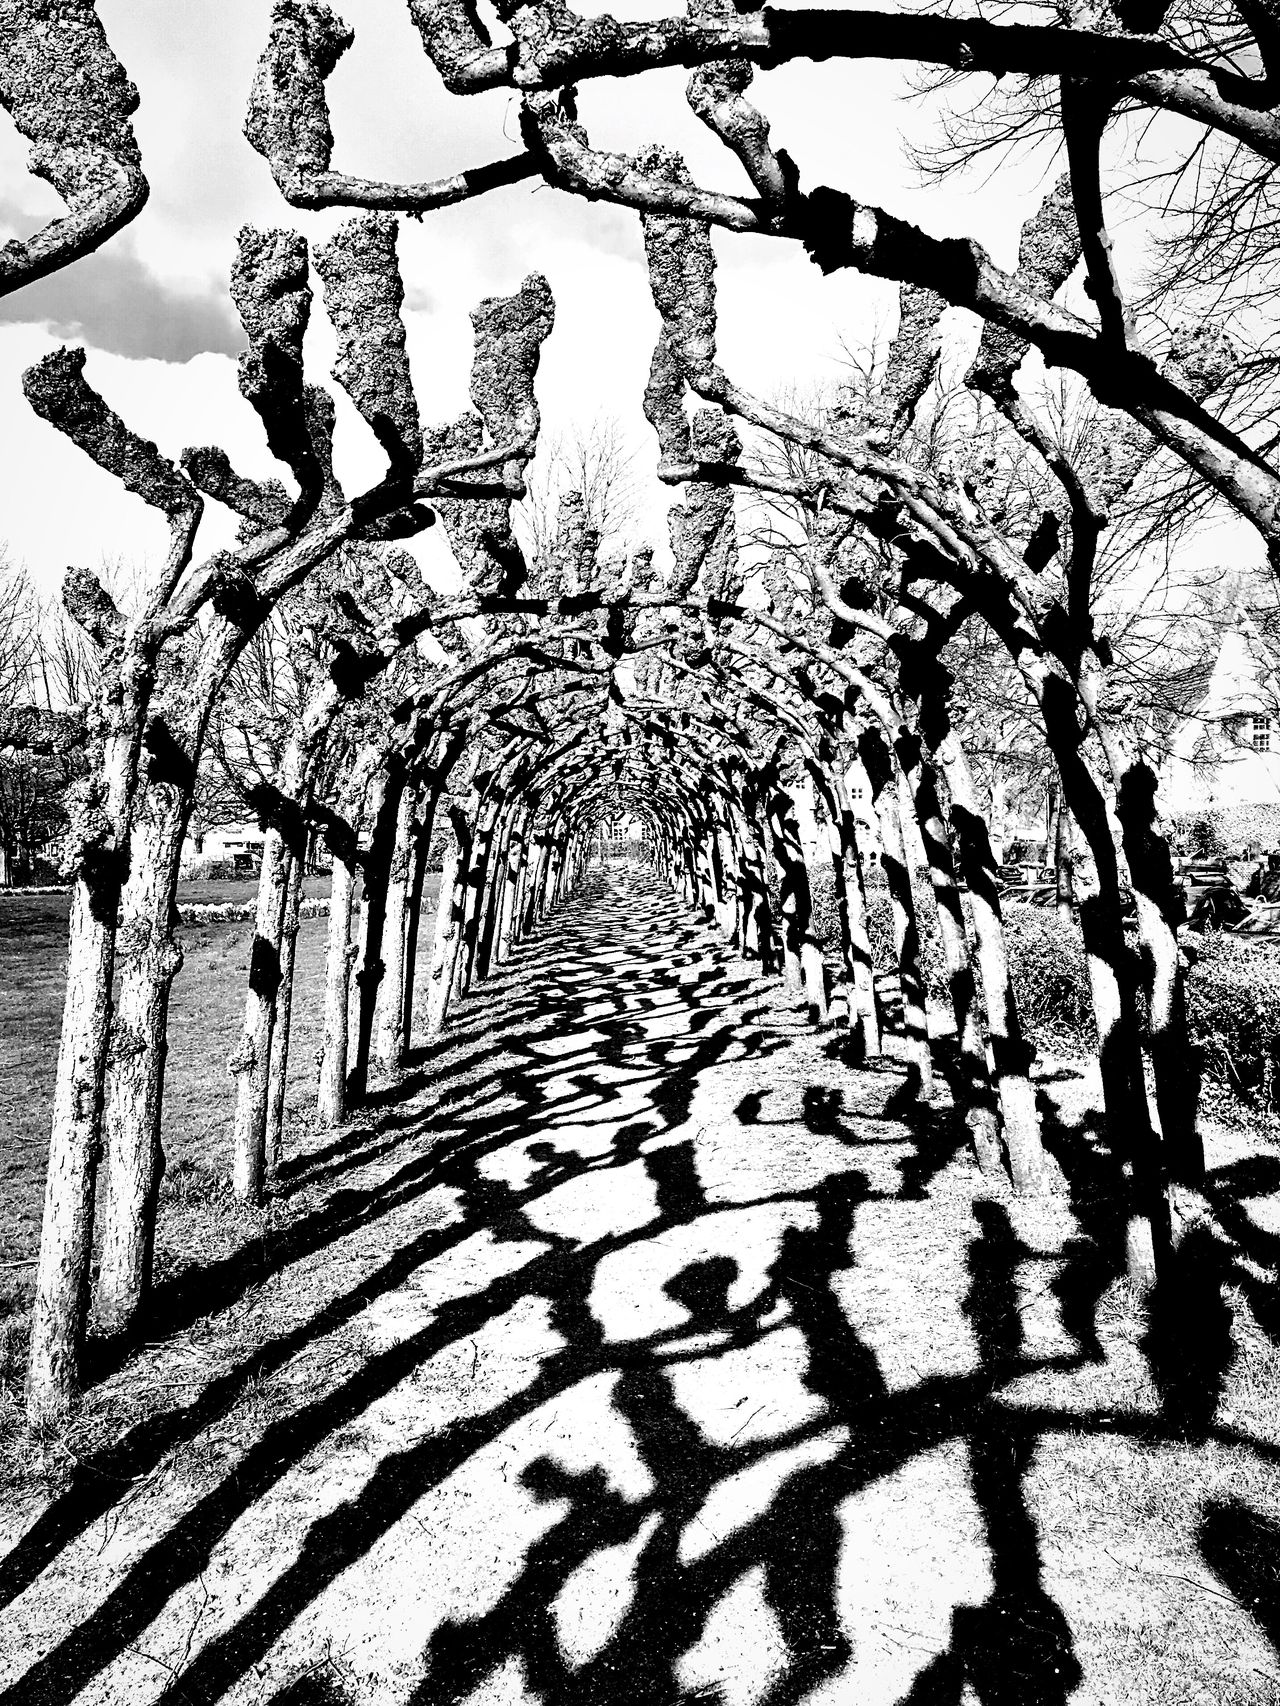 Schatten. The Way Forward Trees No People Light And Shadow Silhouette Beauty In Nature Sunlight Shadow Hamburg Hamburgmeineperle Landscape_Collection Black And White Black & White Black And White Photography Tree Bald Tranquility Scenics The Secret Spaces Pergola Park Light Landscape The Great Outdoors - 2017 EyeEm Awards Art Is Everywhere